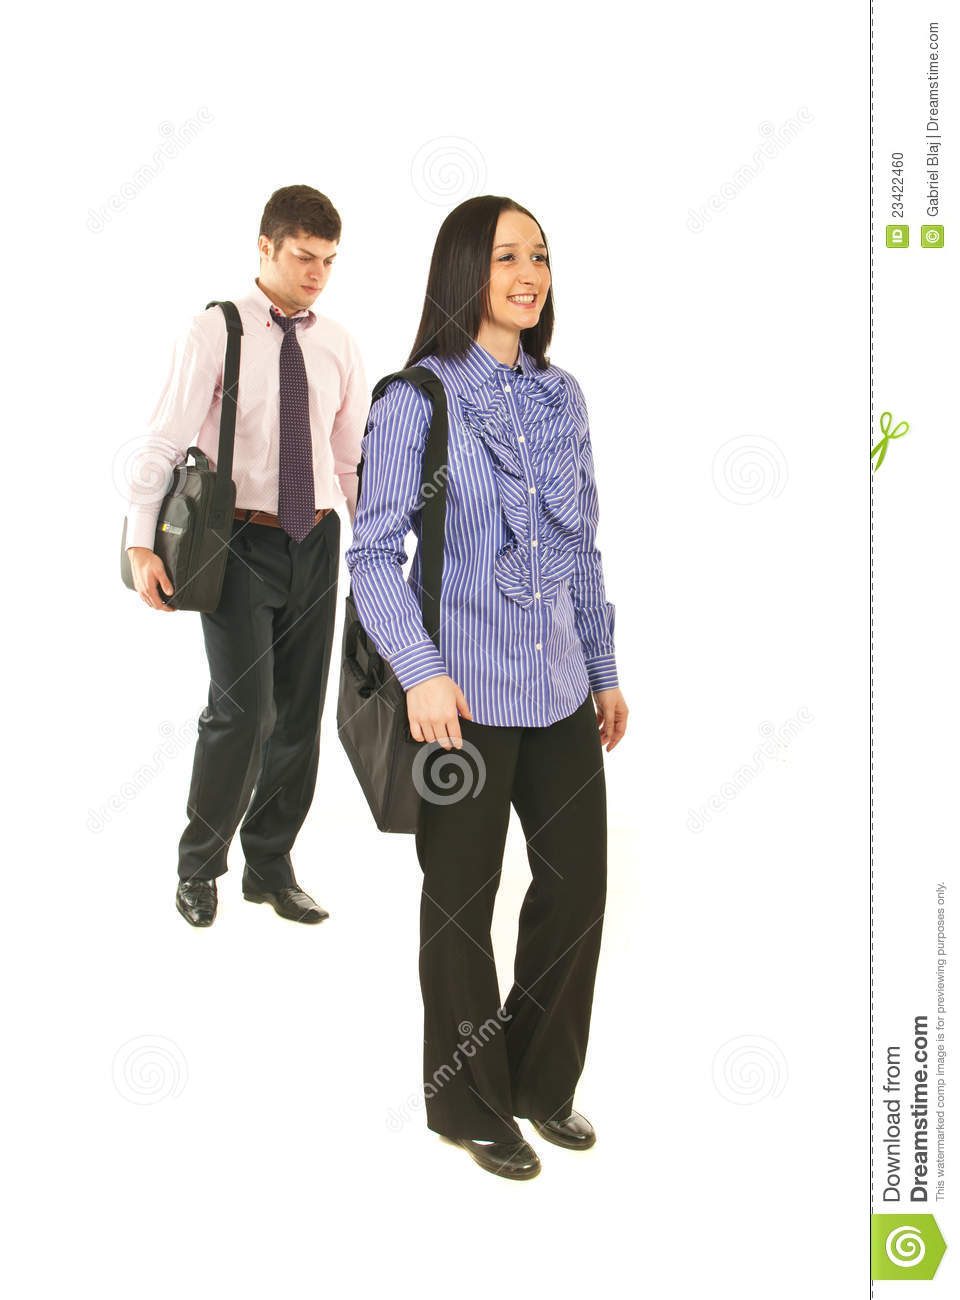 Business People Walking To Their Jobs Stock Photo - Image: 23422460